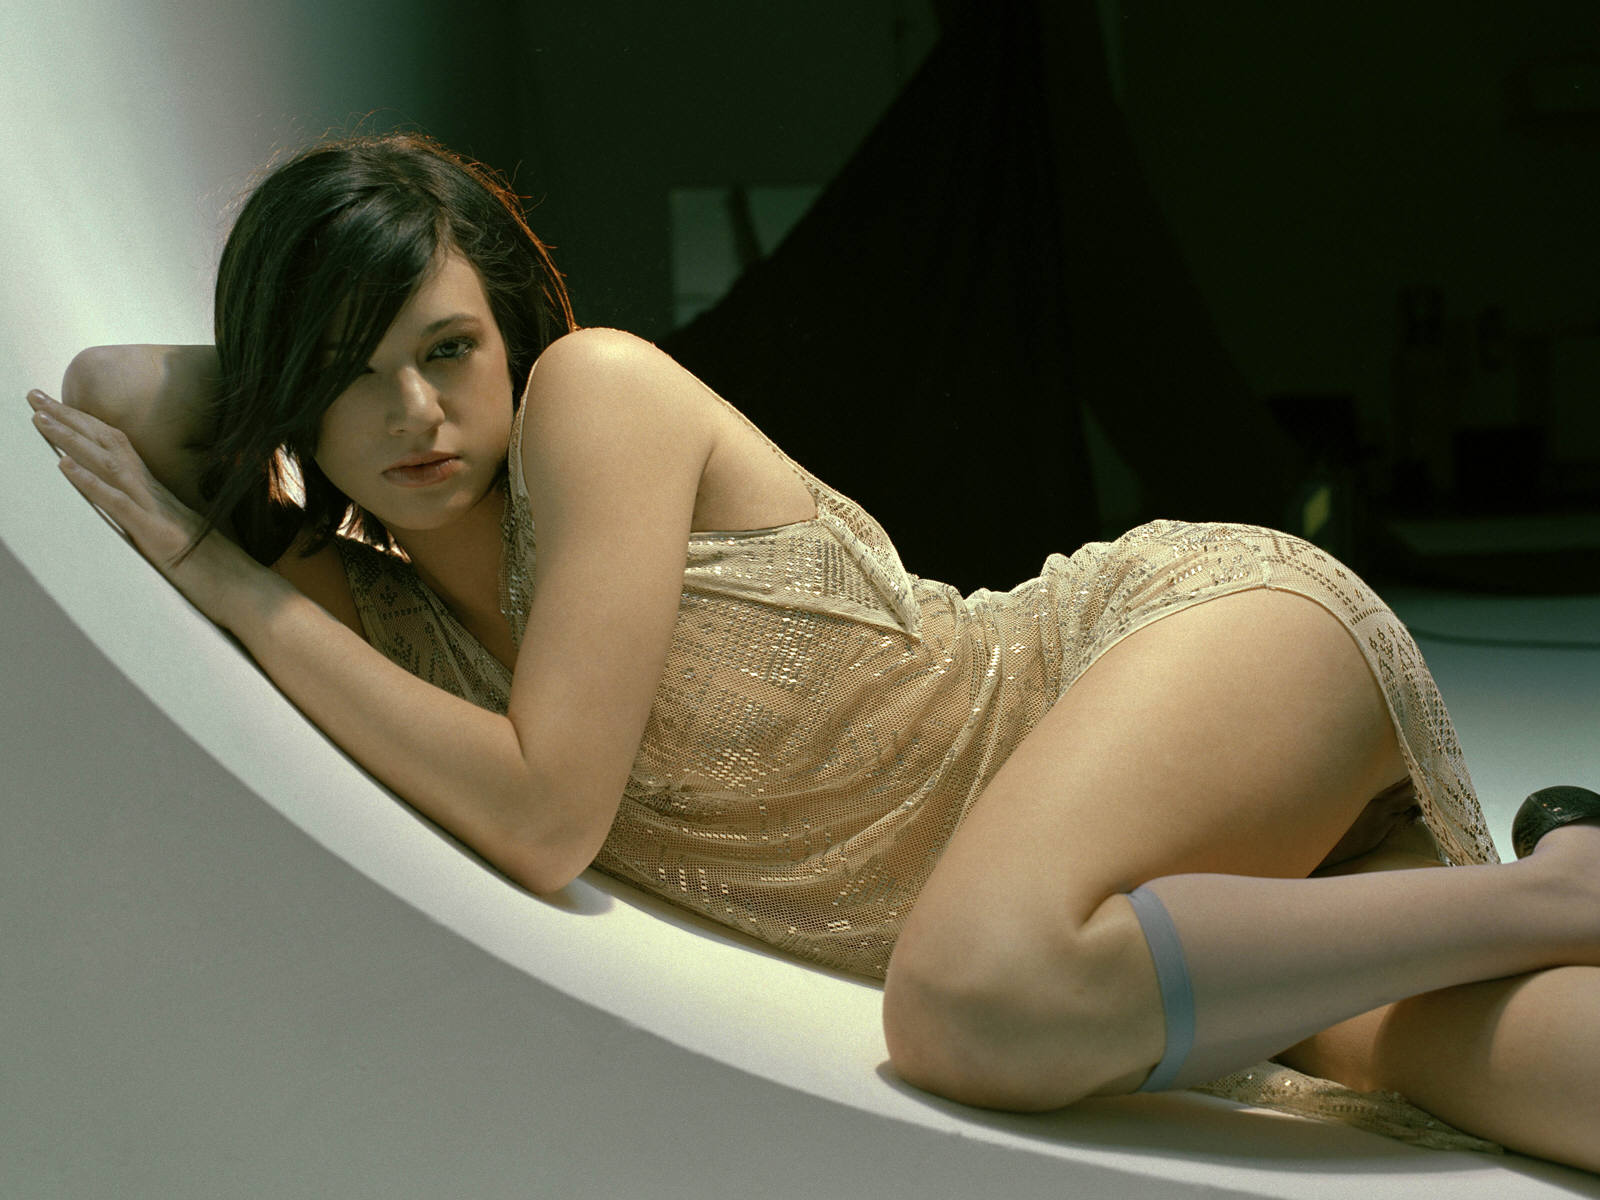 Hot asia argento 39 s wallpapers world amazing wallpapers for Hot wallpapers world